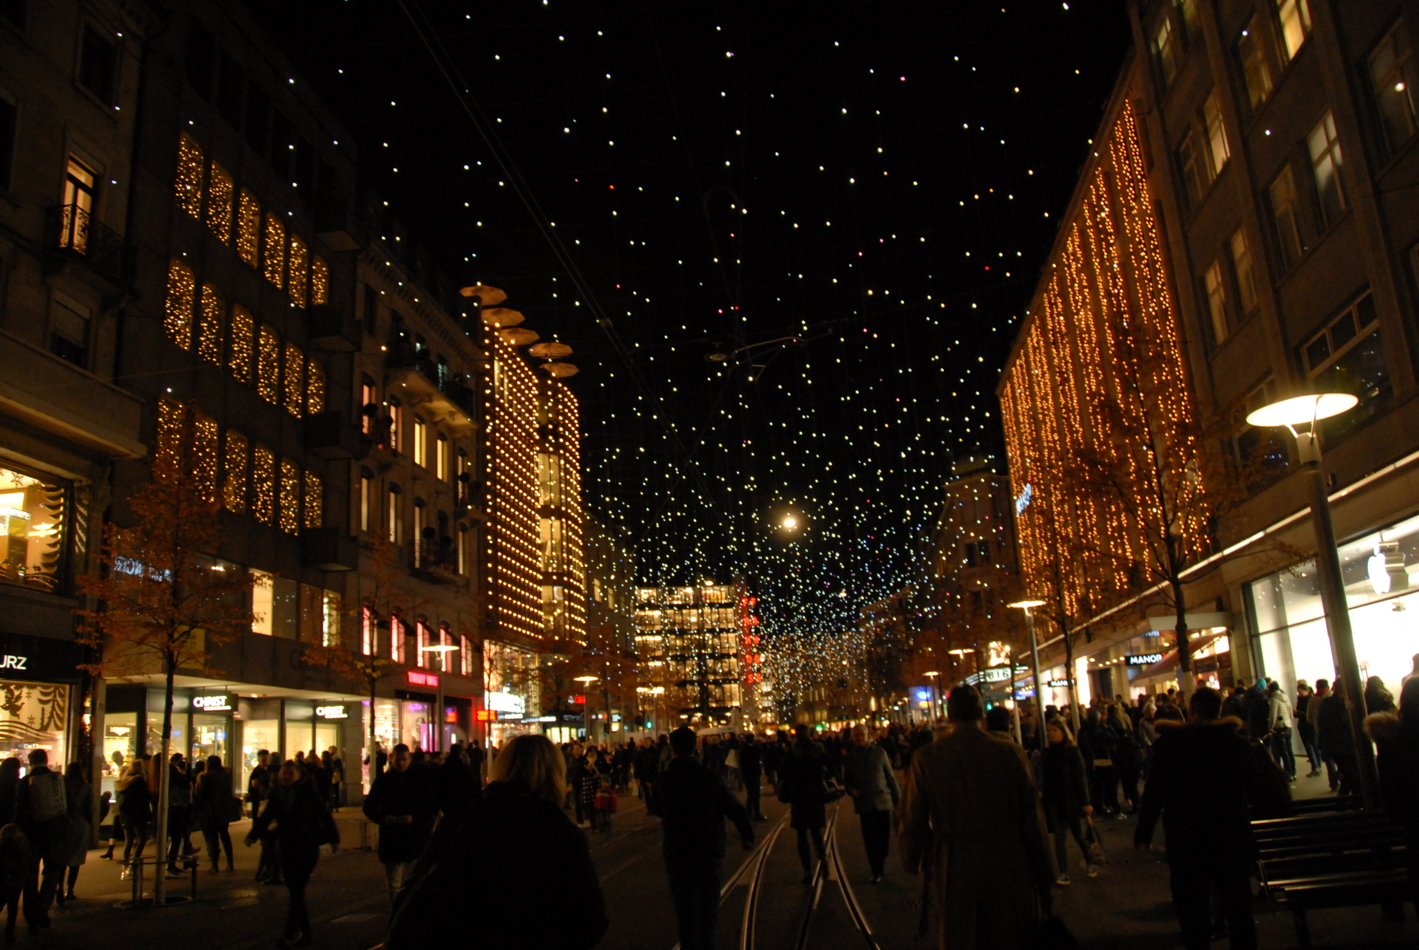 weihnachtsbeleuchtung bahnhofstrasse z rich lucy in the sky with diamonds. Black Bedroom Furniture Sets. Home Design Ideas